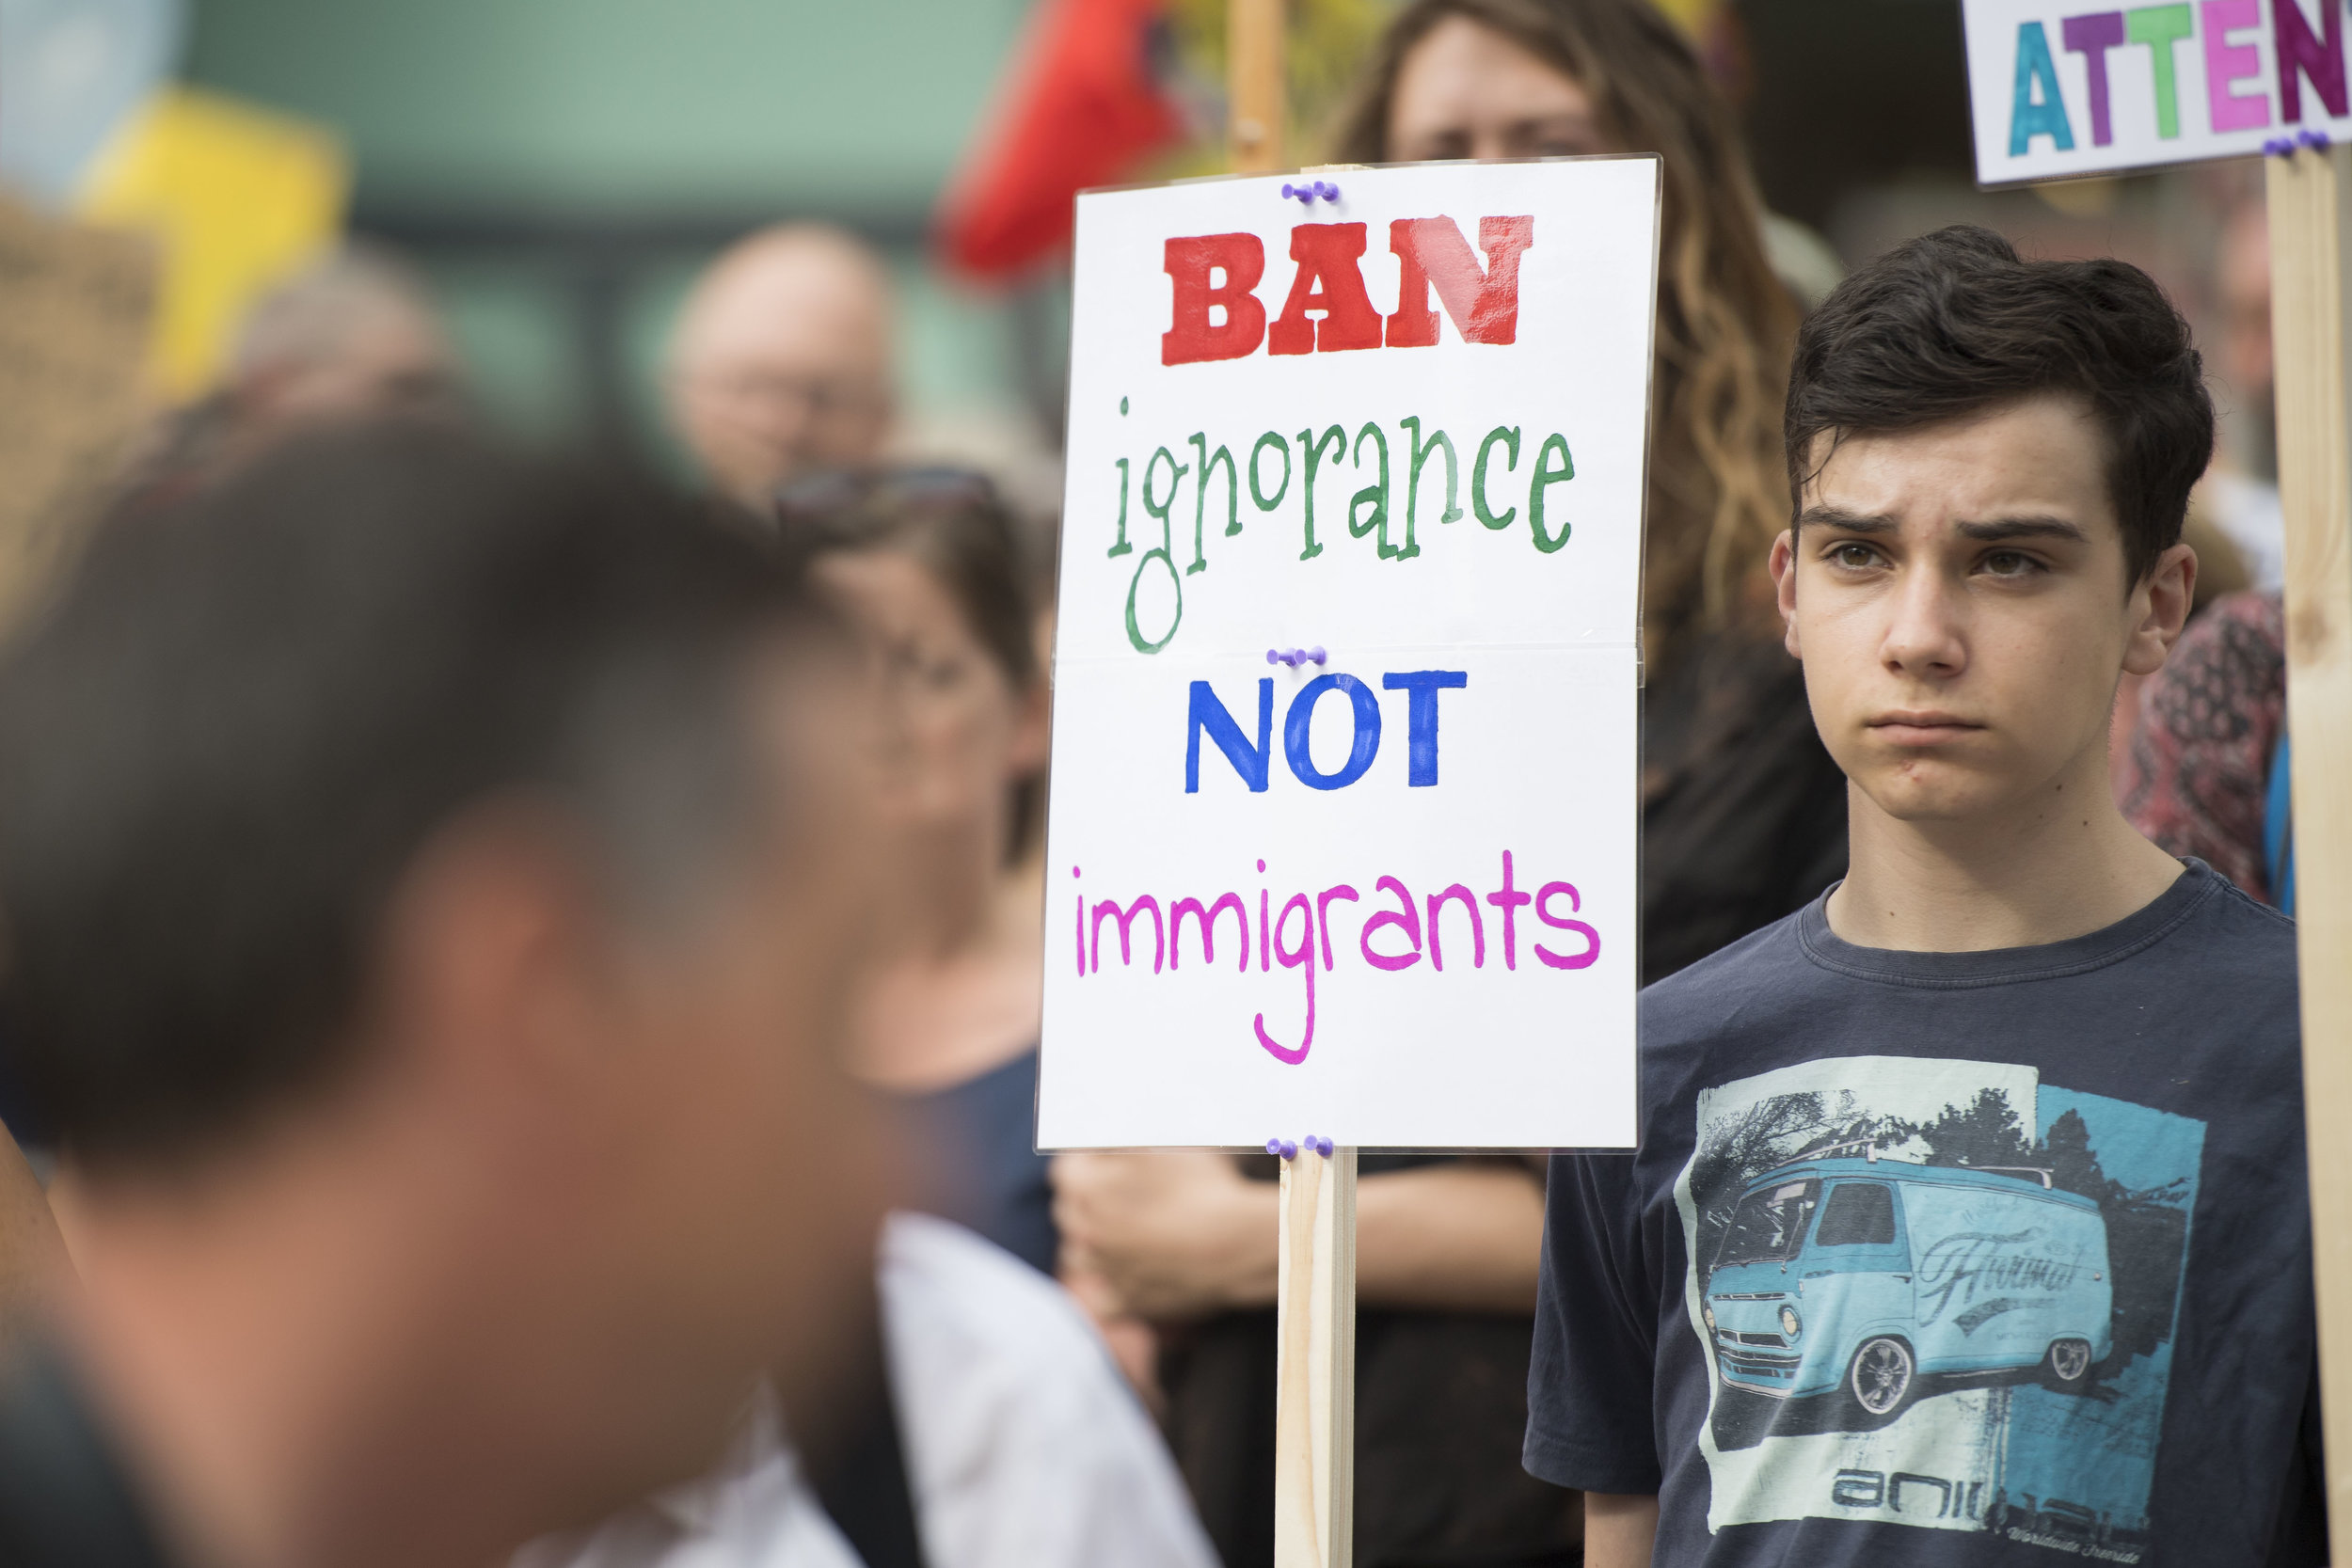 CARDIFF, UNITED KINGDOM - JULY 12: Anti Donald Trump signs are seen as protestors gather outside Cardiff Library on the Hayes in Cardiff to protest against a visit by the President of the United States Donald Trump on July 12, 2018 in Cardiff, United Kingdom. The President of the United States and First Lady, Melania Trump, have arrived in the United Kingdom for their first official visit. They are due to have dinner at Blenheim Palace, visit Prime Minister Theresa May at Chequers and have tea with the Queen at Windsor Castle. (Photo by Matthew Horwood/Getty Images)